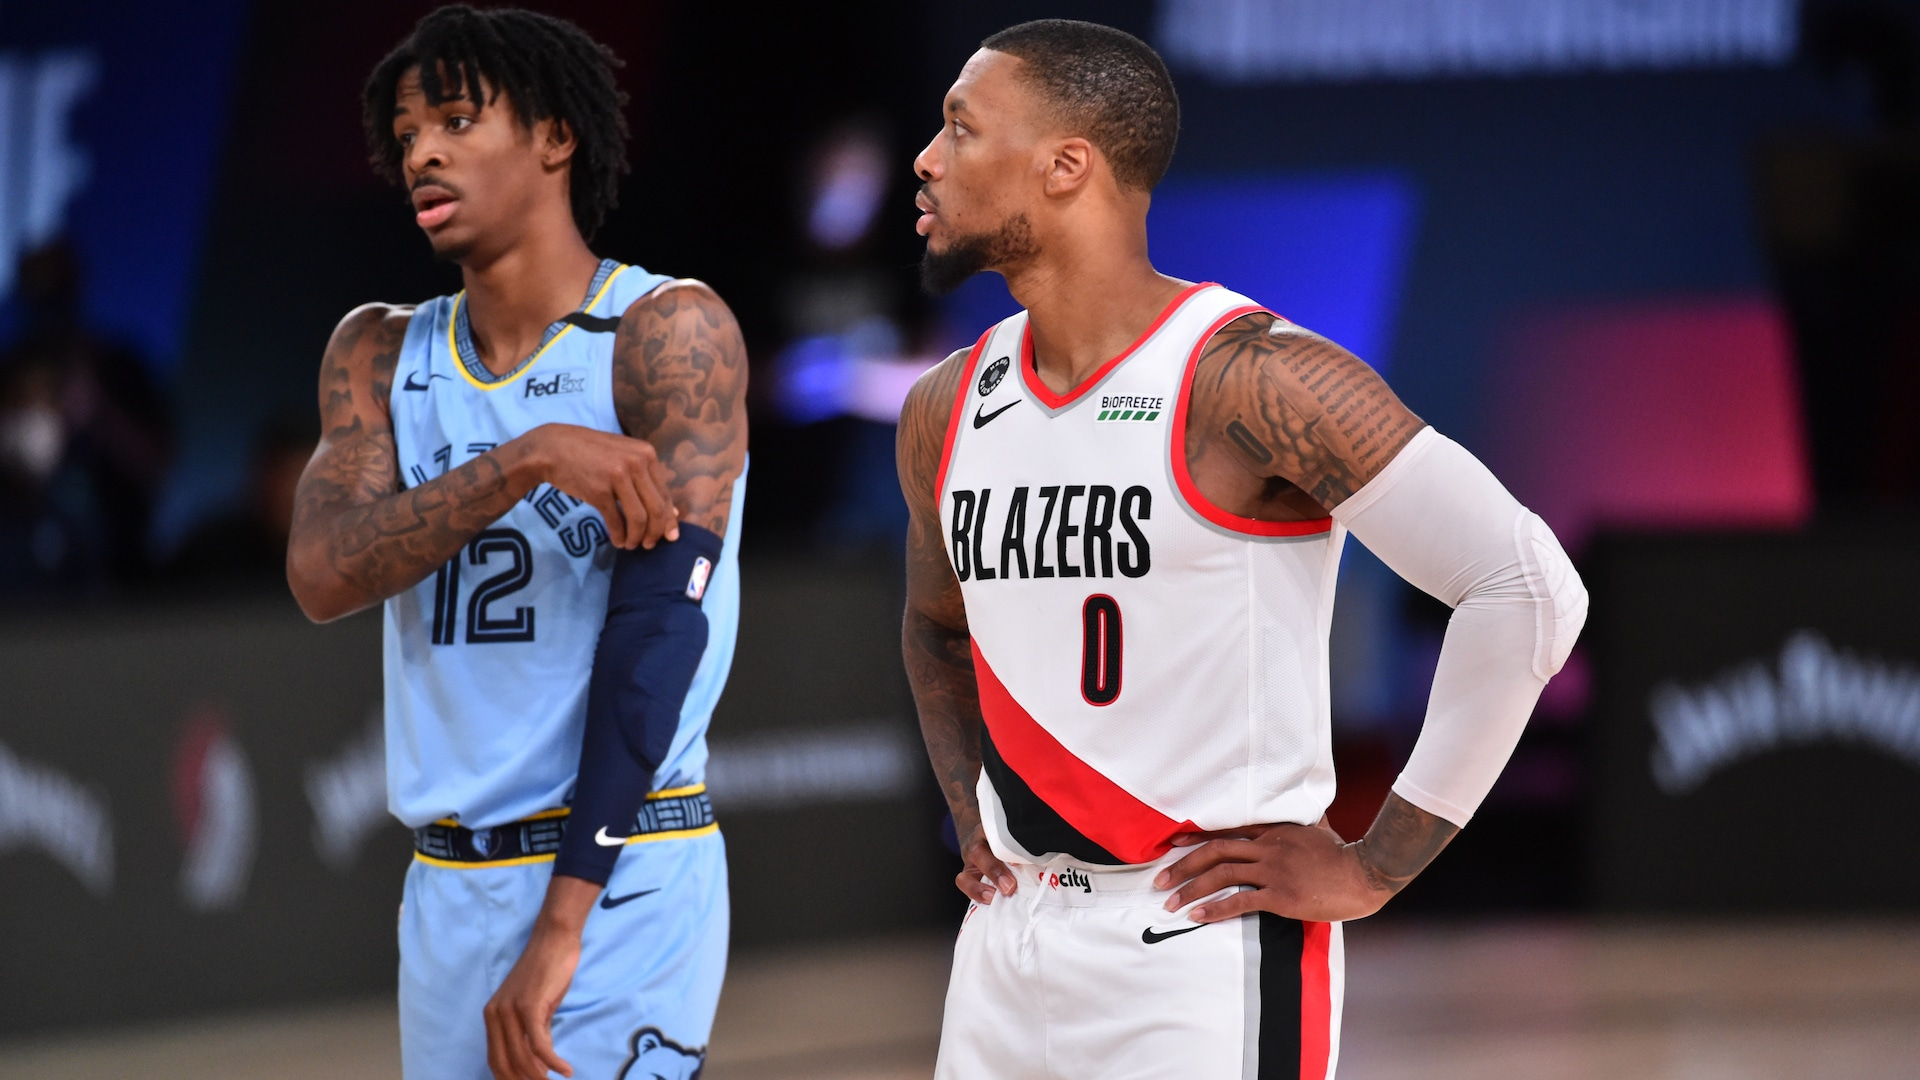 Blogtable: Are Blazers or Grizzlies a tougher first-round foe for Lakers?